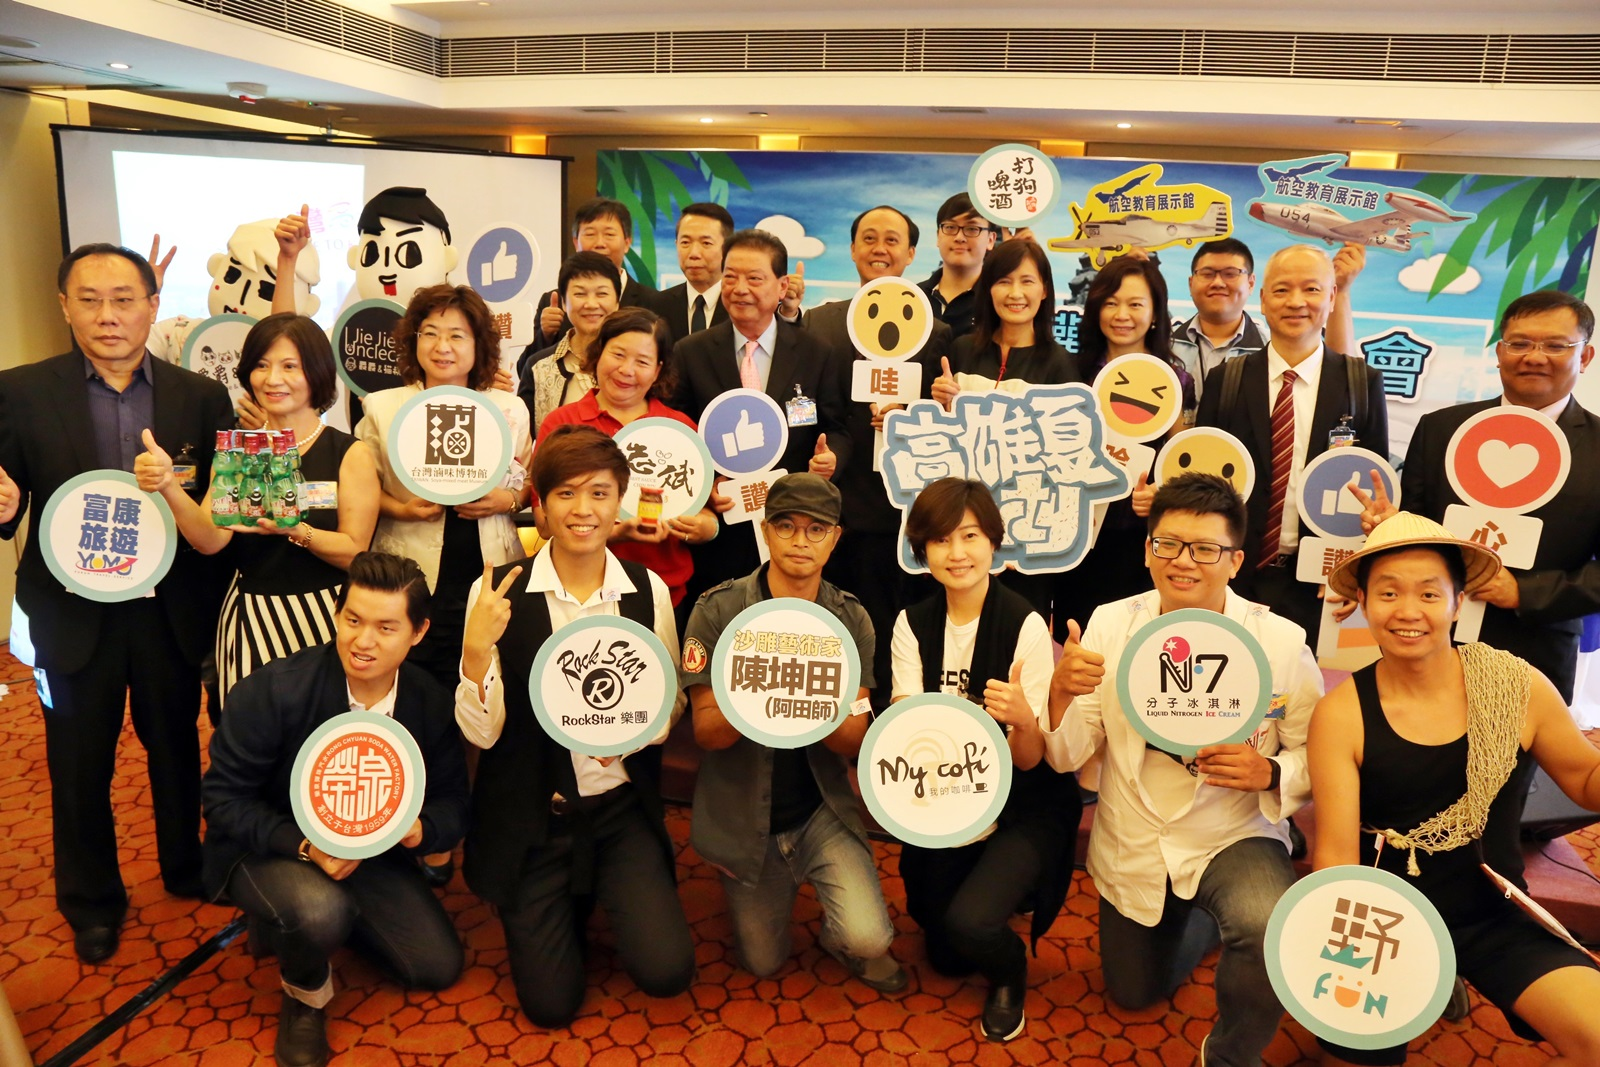 Kaohsiung promotes tourism in Hong Kong